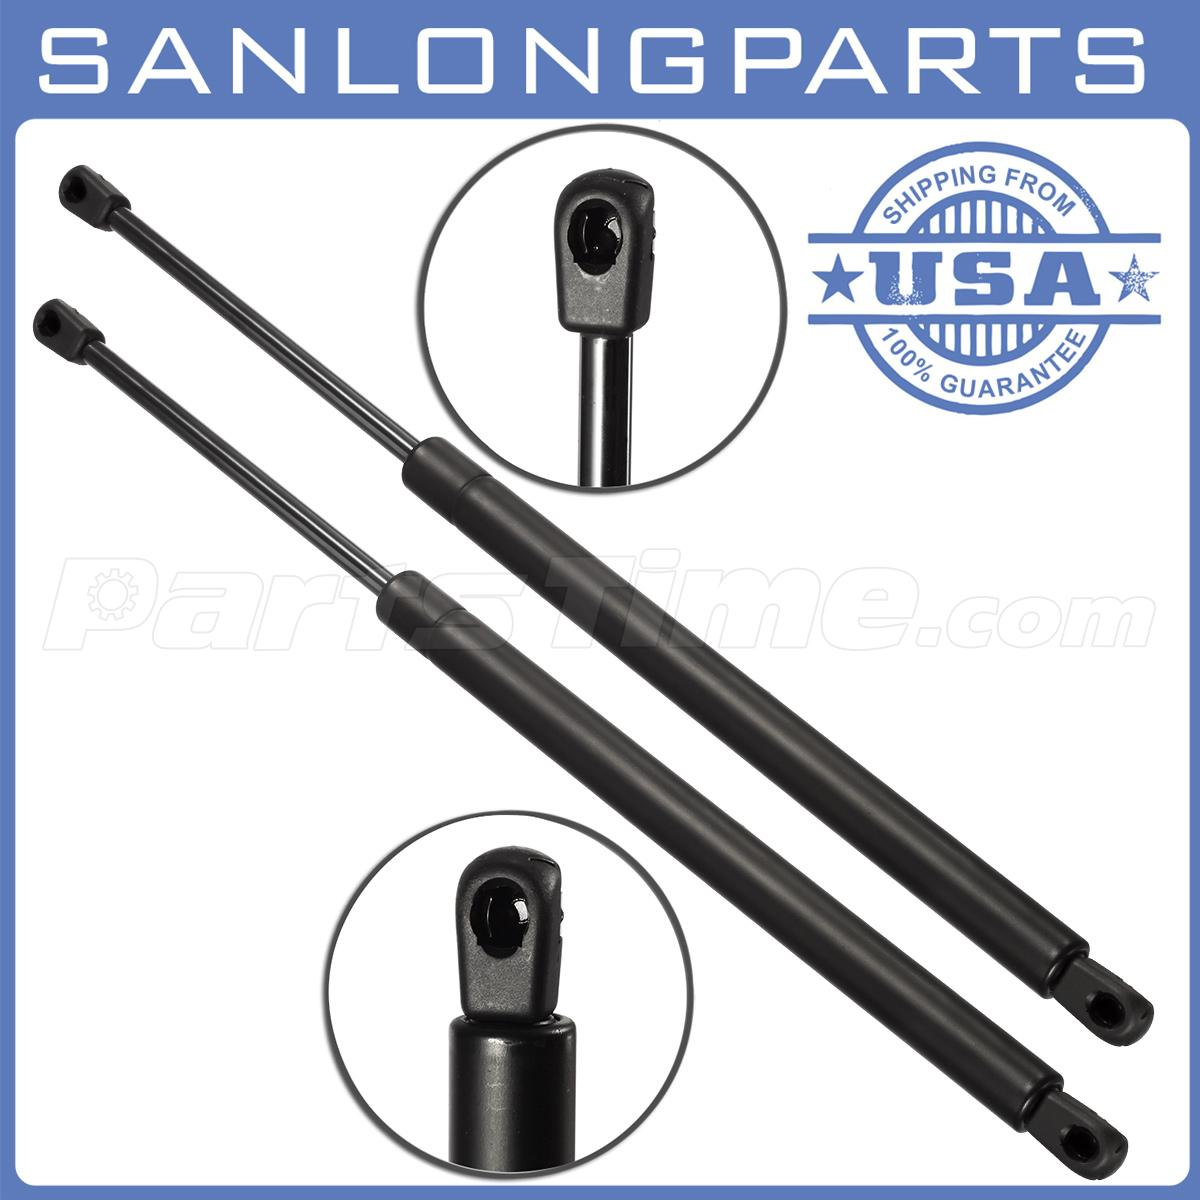 2Pcs Gas Charged Tailgate Lift Support Fits GMC Envoy